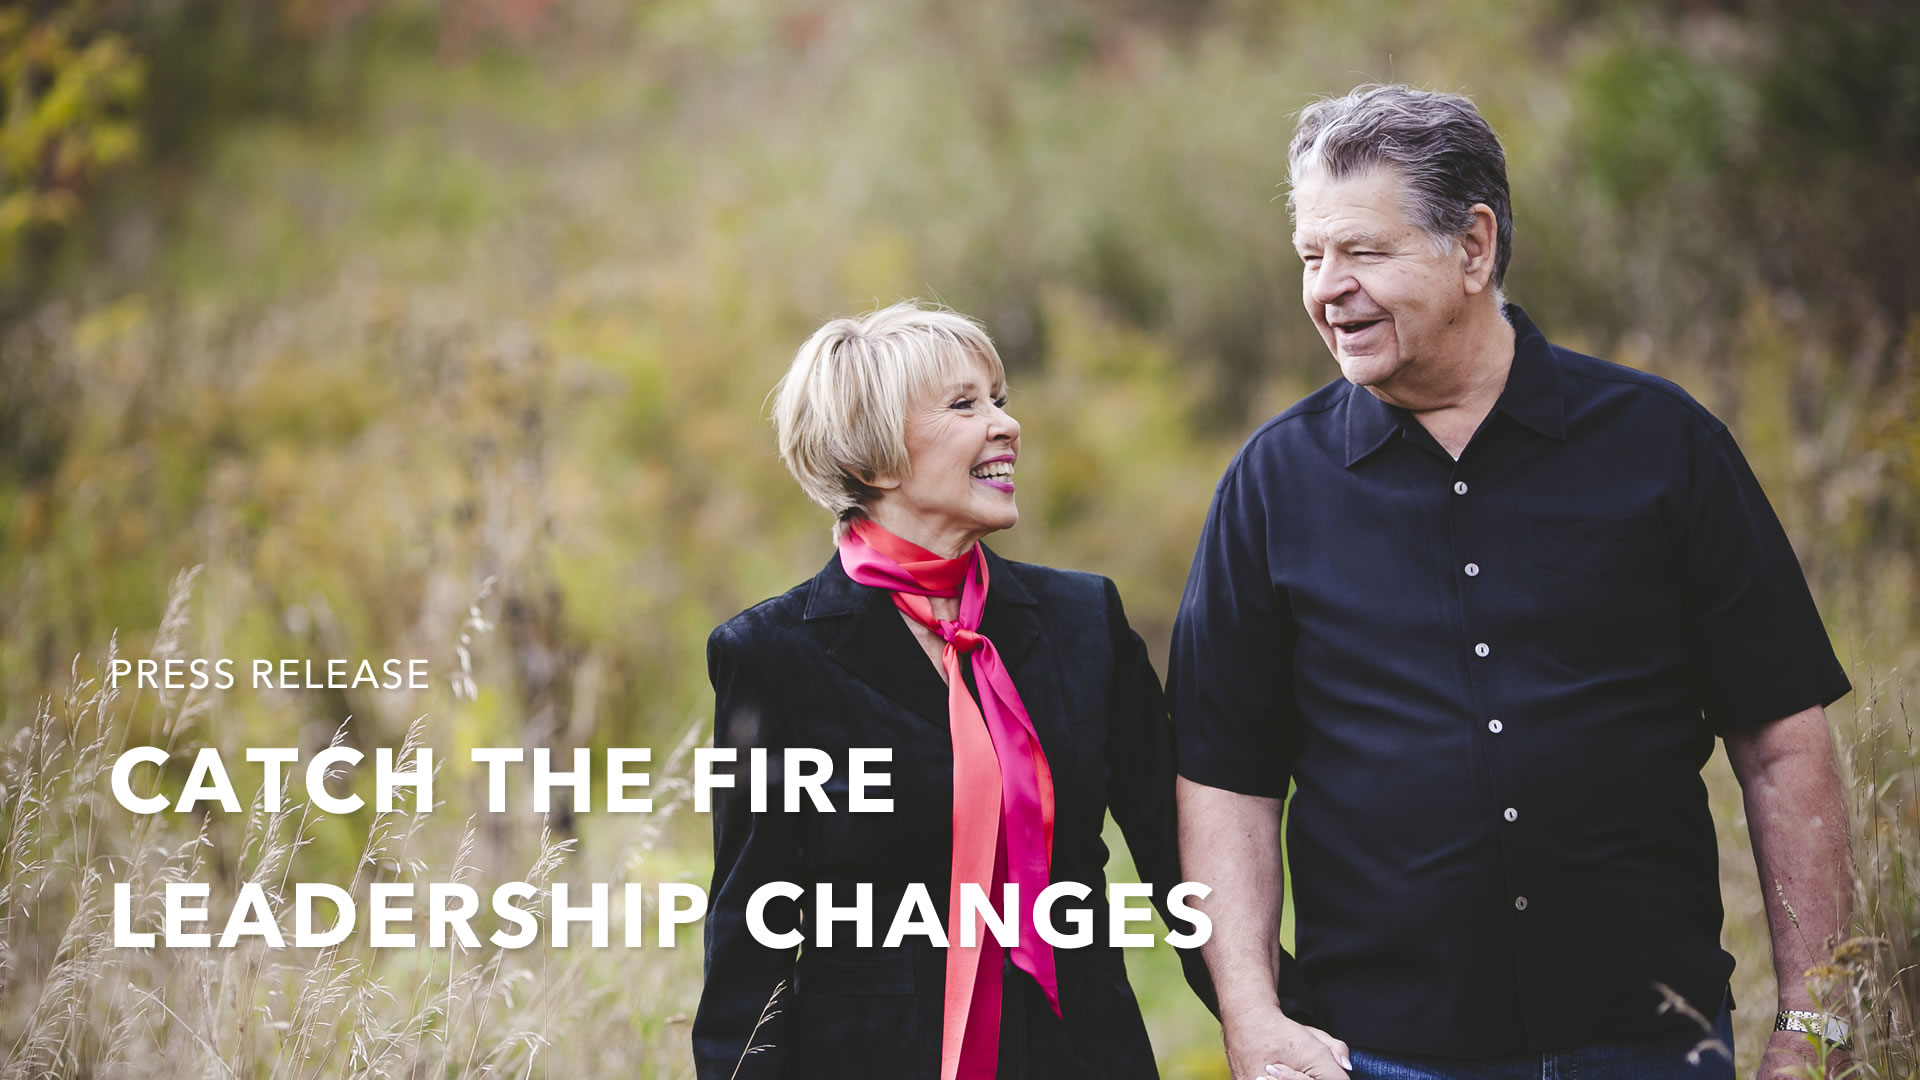 Press Release: Catch The Fire Leadership Changes